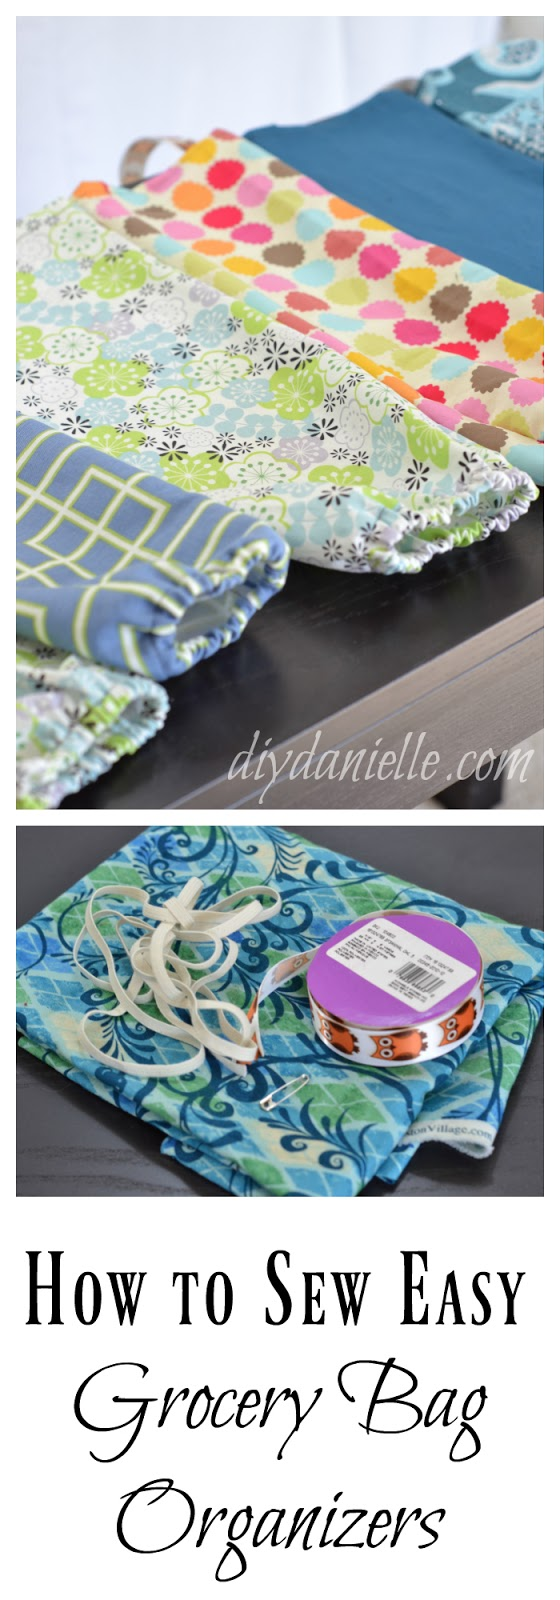 Easy DIY Grocery Bag Holders: Tutorial